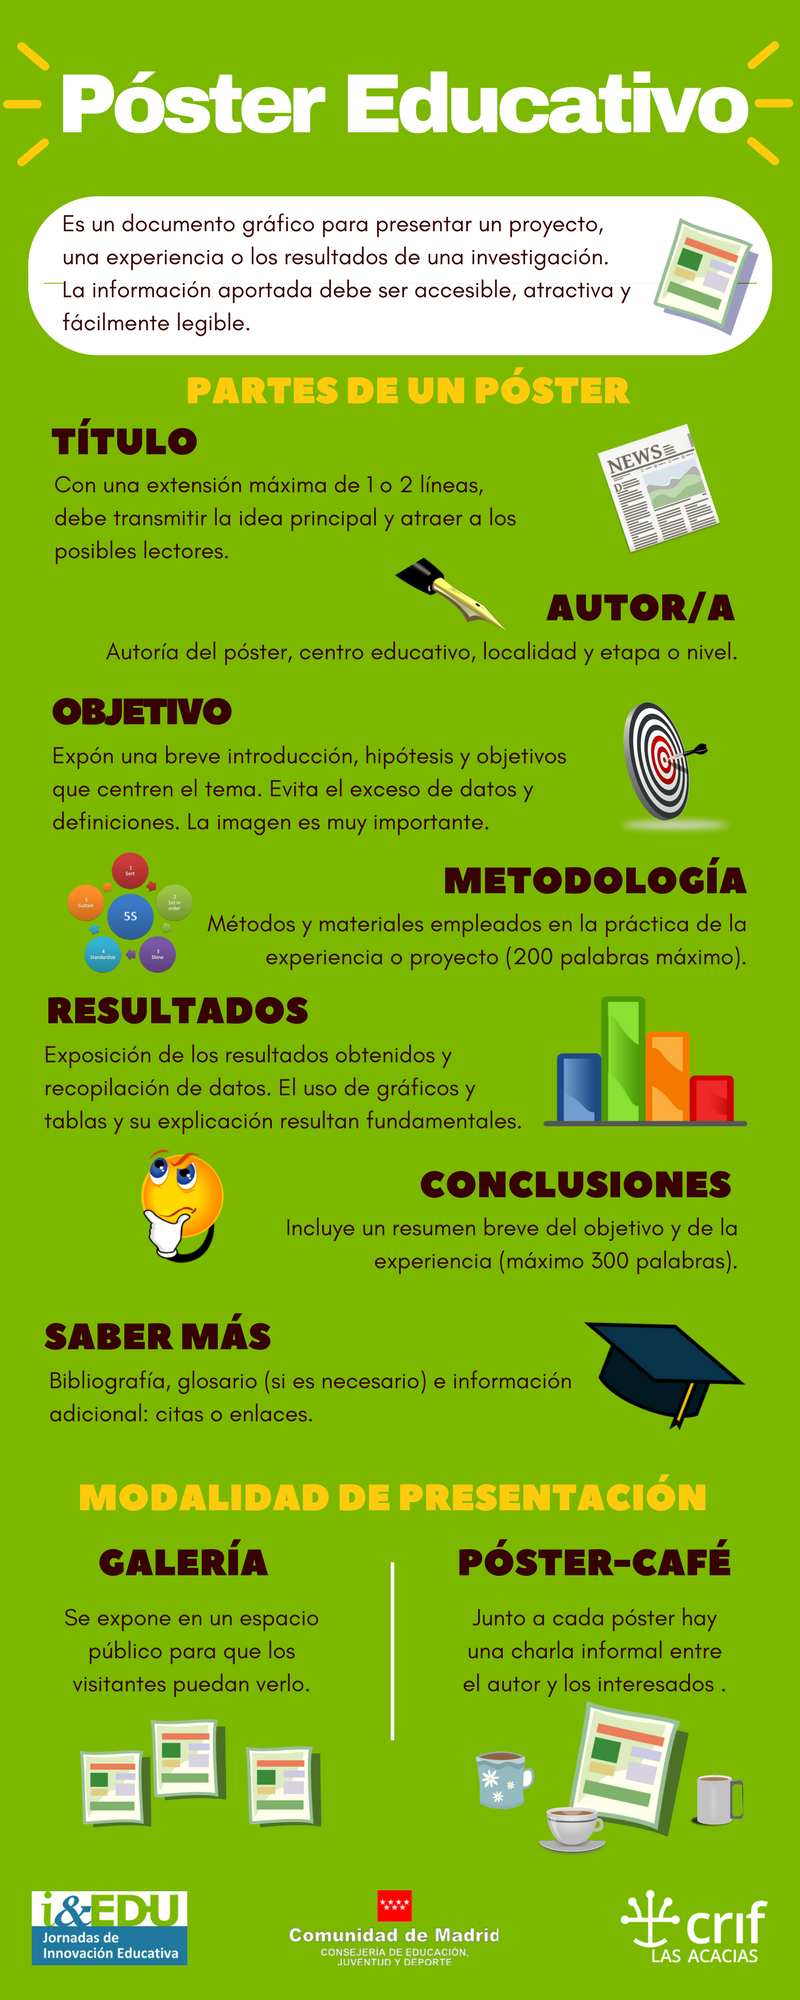 Póster-Educativo(1)